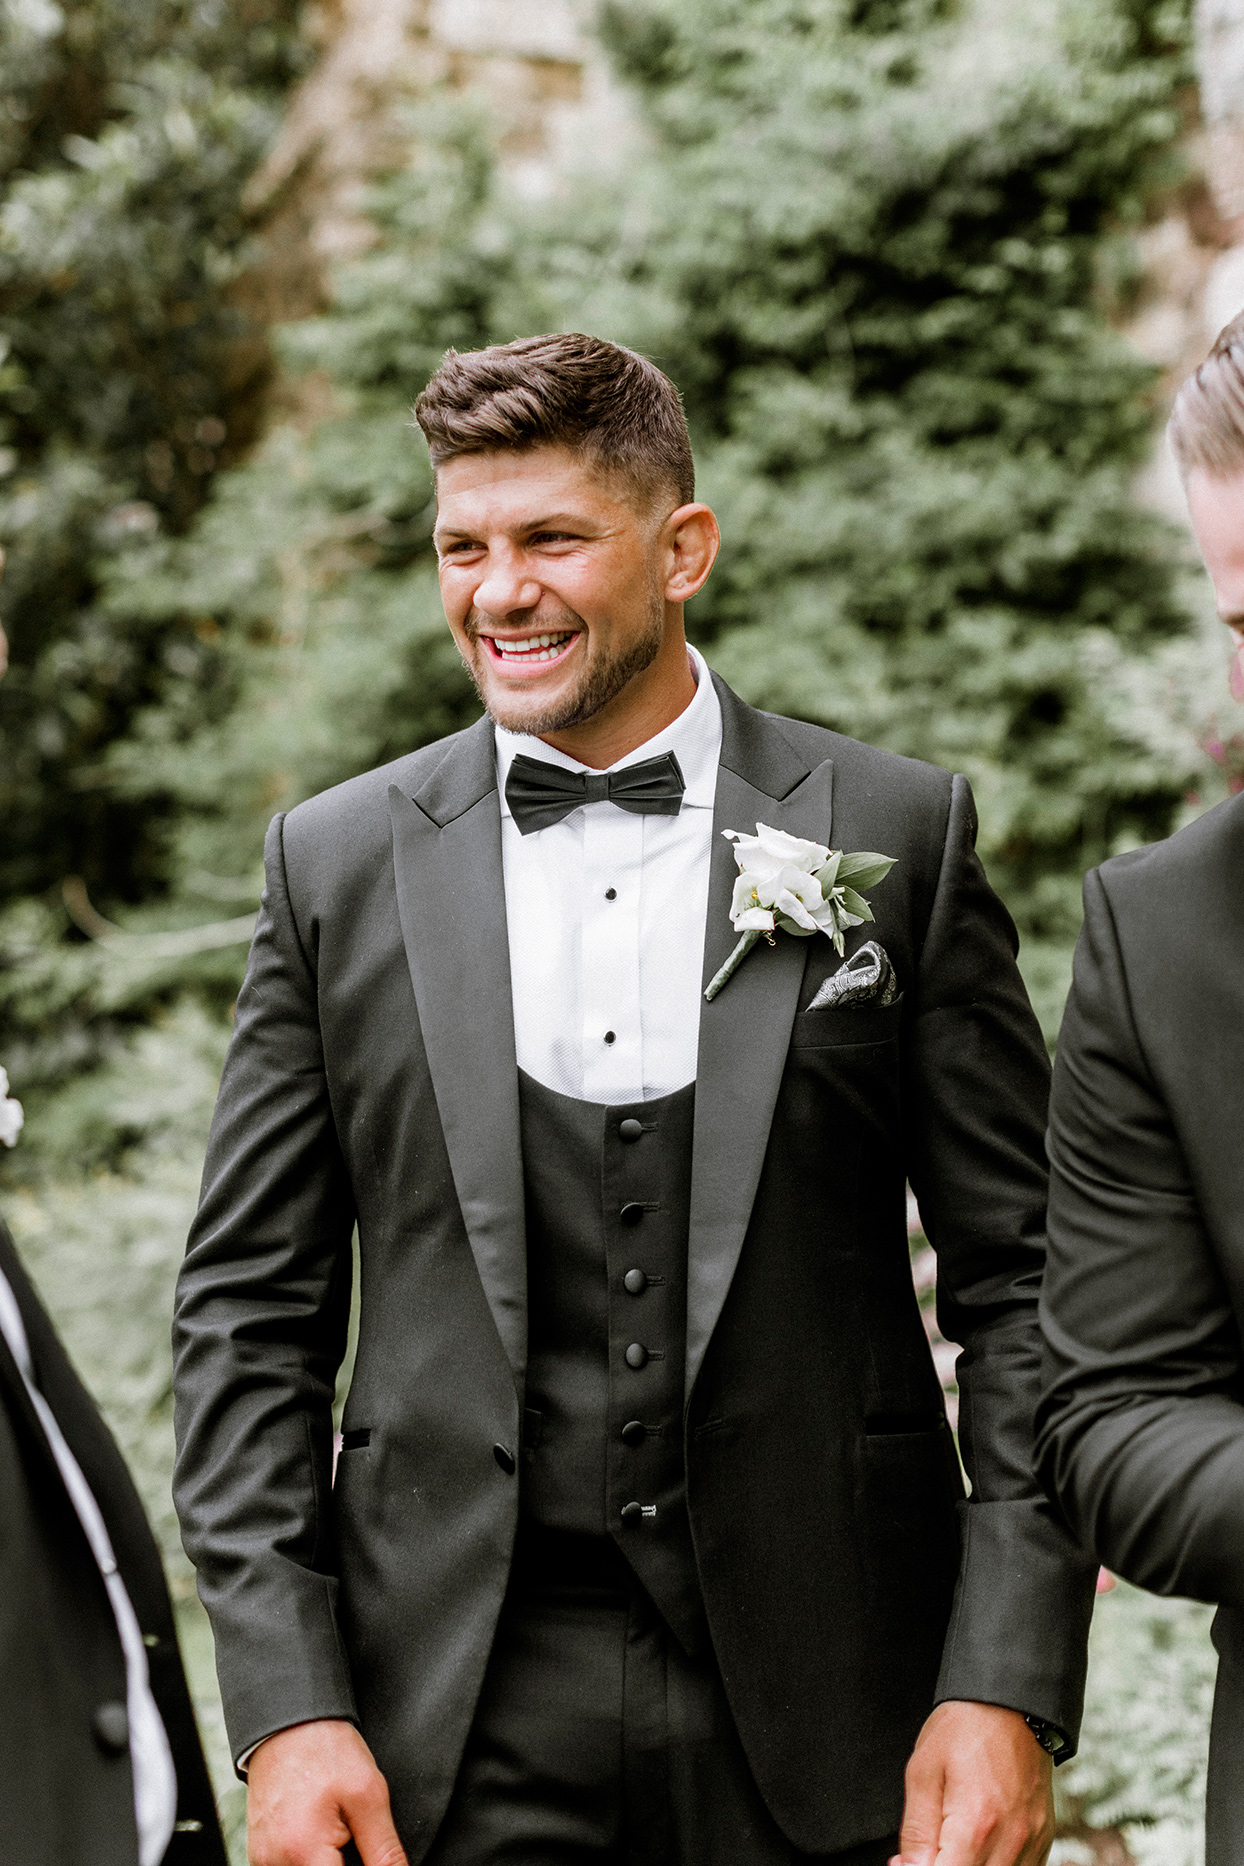 groom smiling in black wedding tux with bowtie